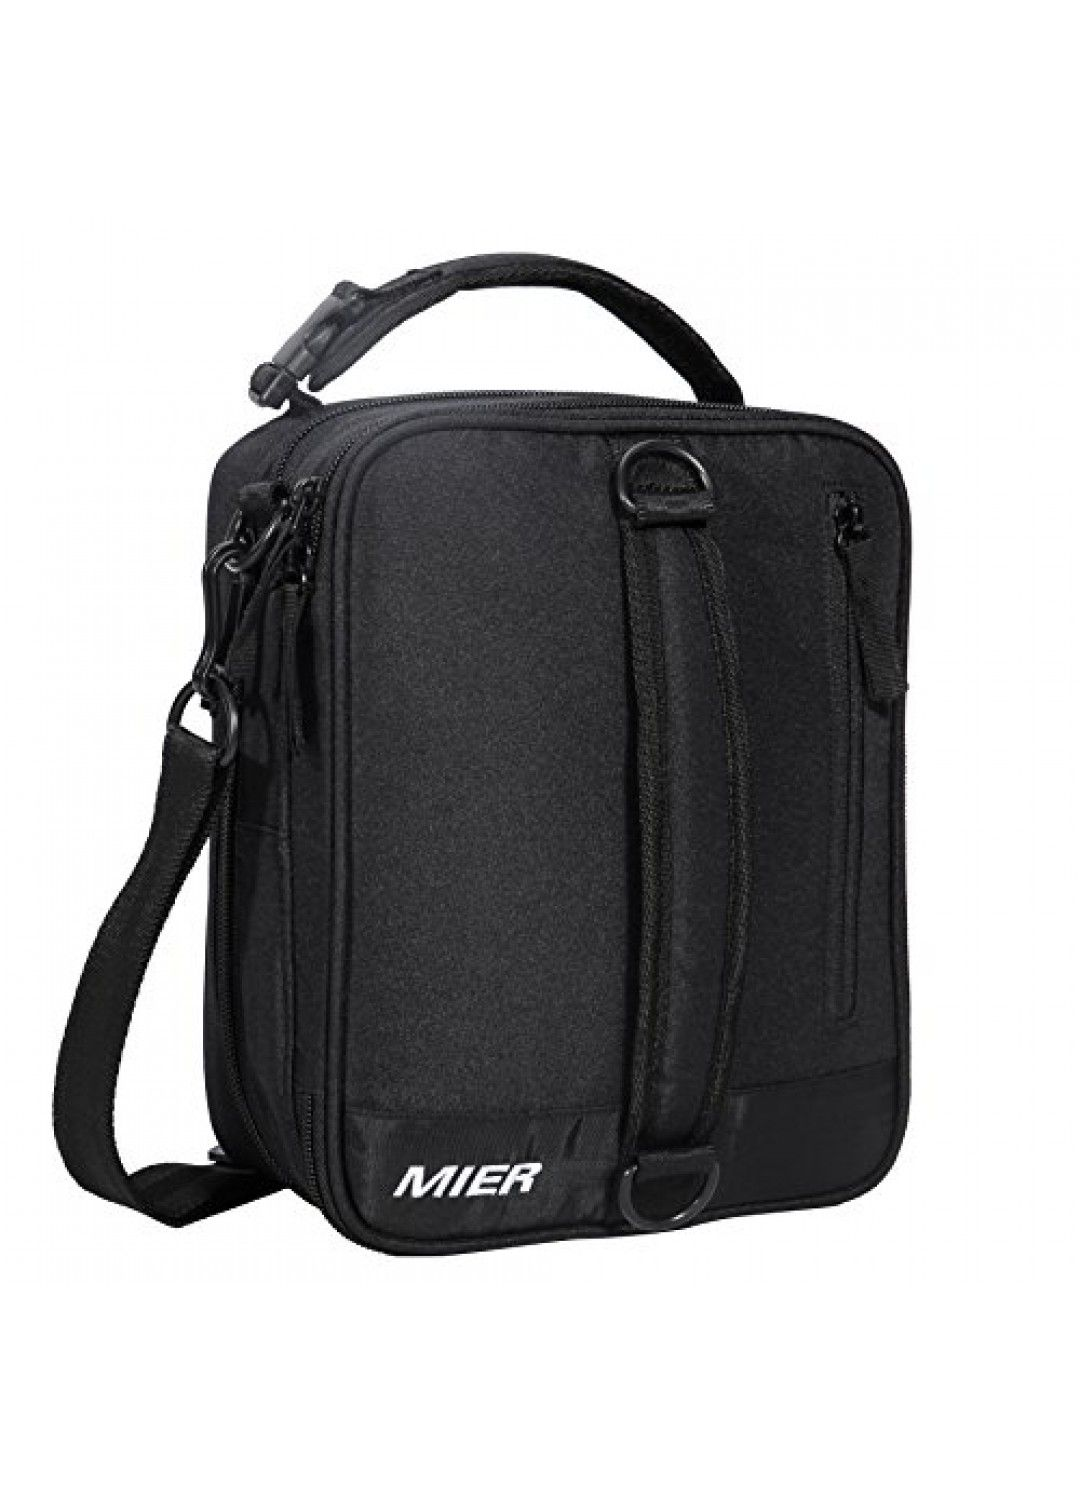 MIER Insulated Lunch Box Bag Expandable Lunch Pack for Men 8759292fe8